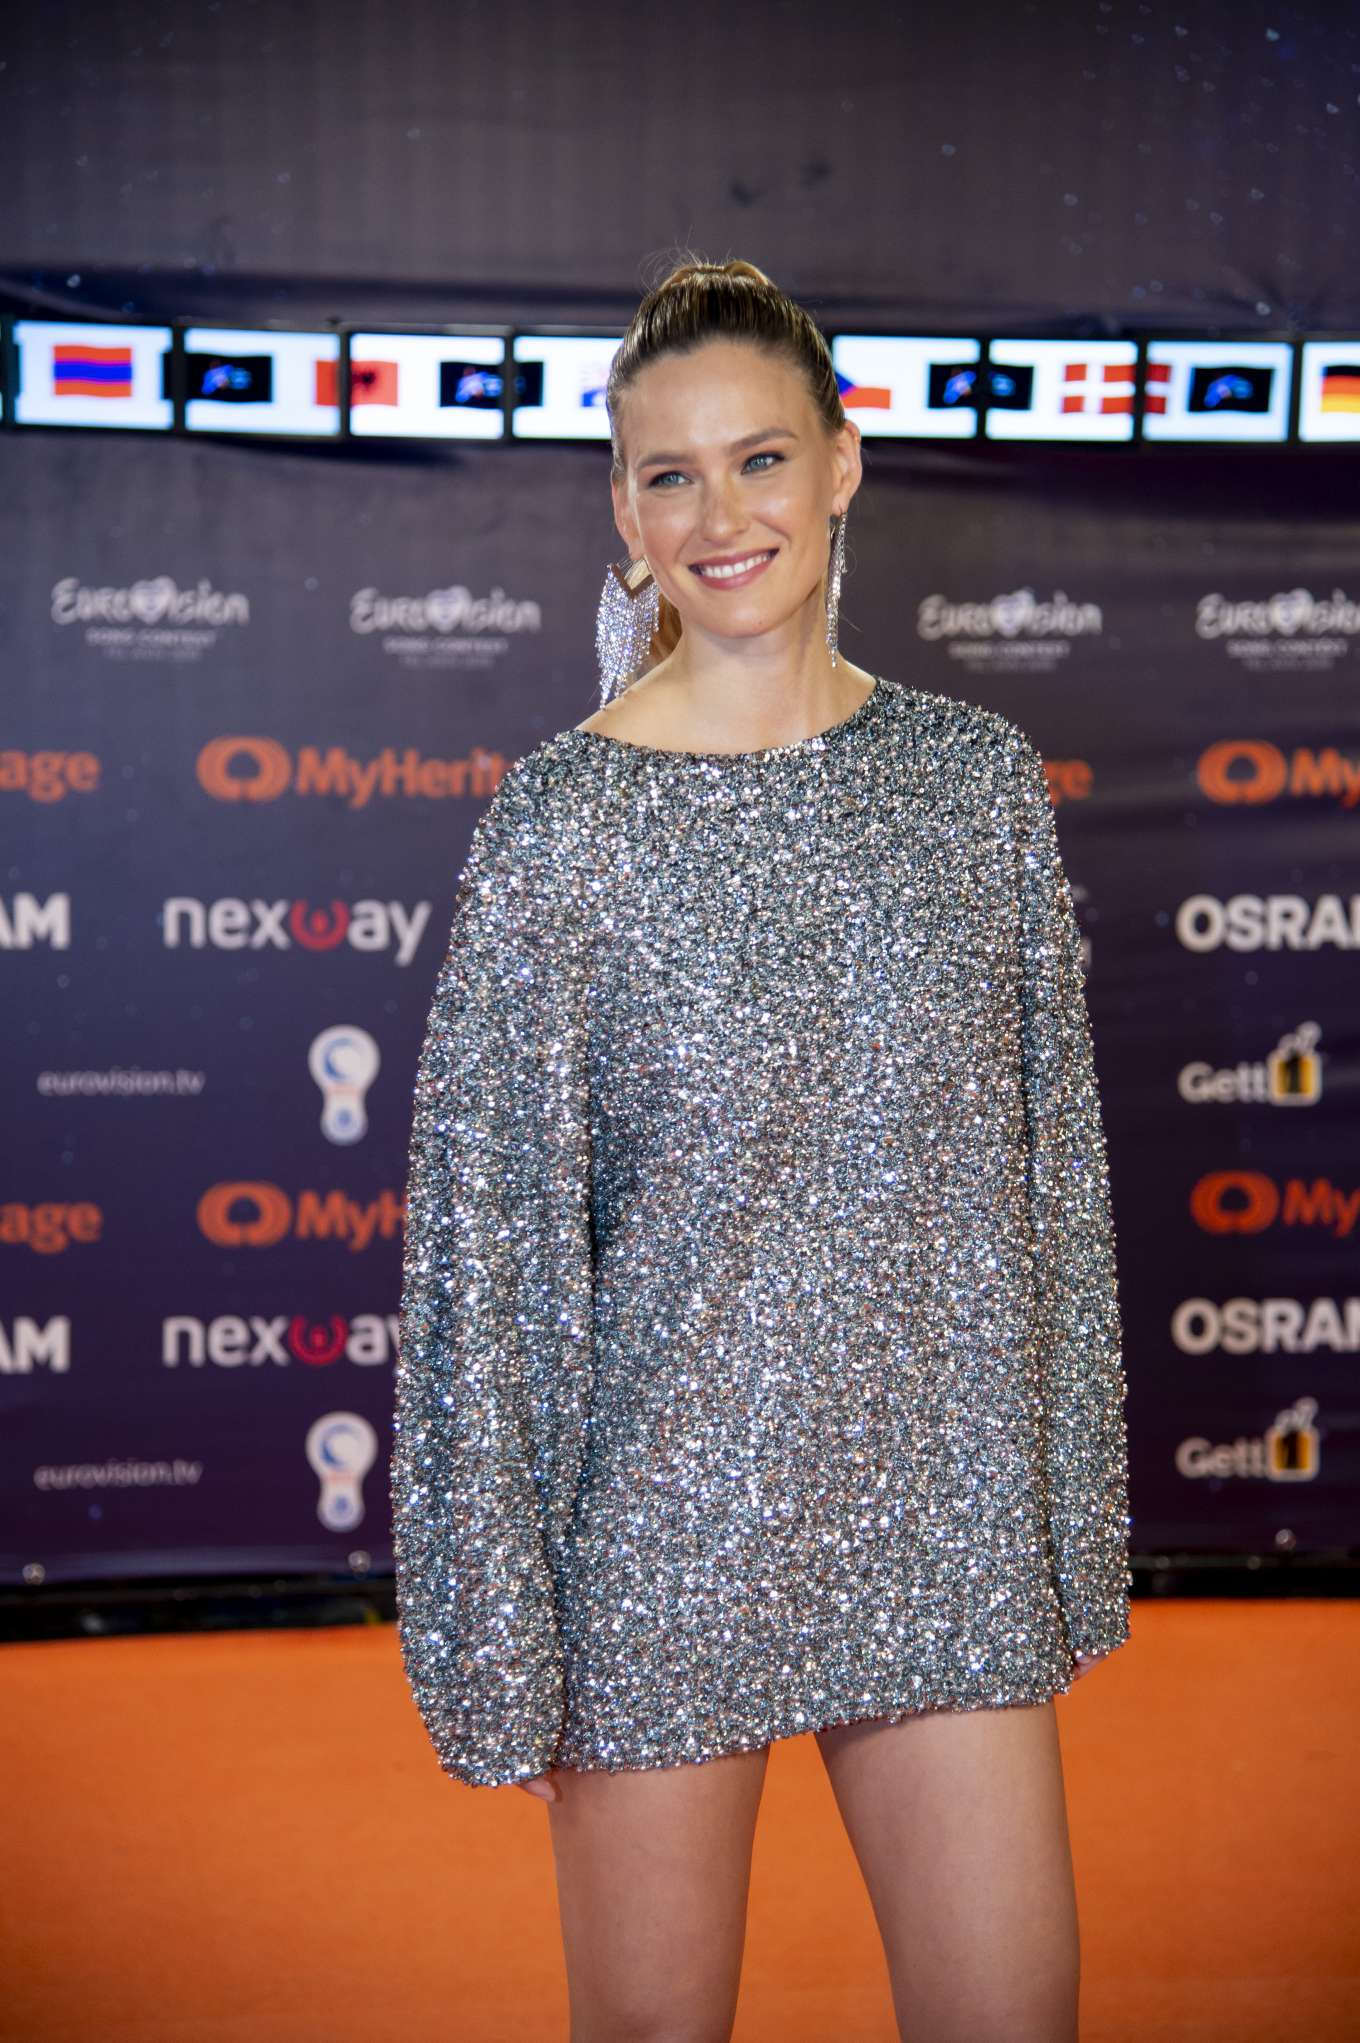 Bar Refaeli - 2019 Eurovision Song Contest Opening Ceremony in Tel Aviv